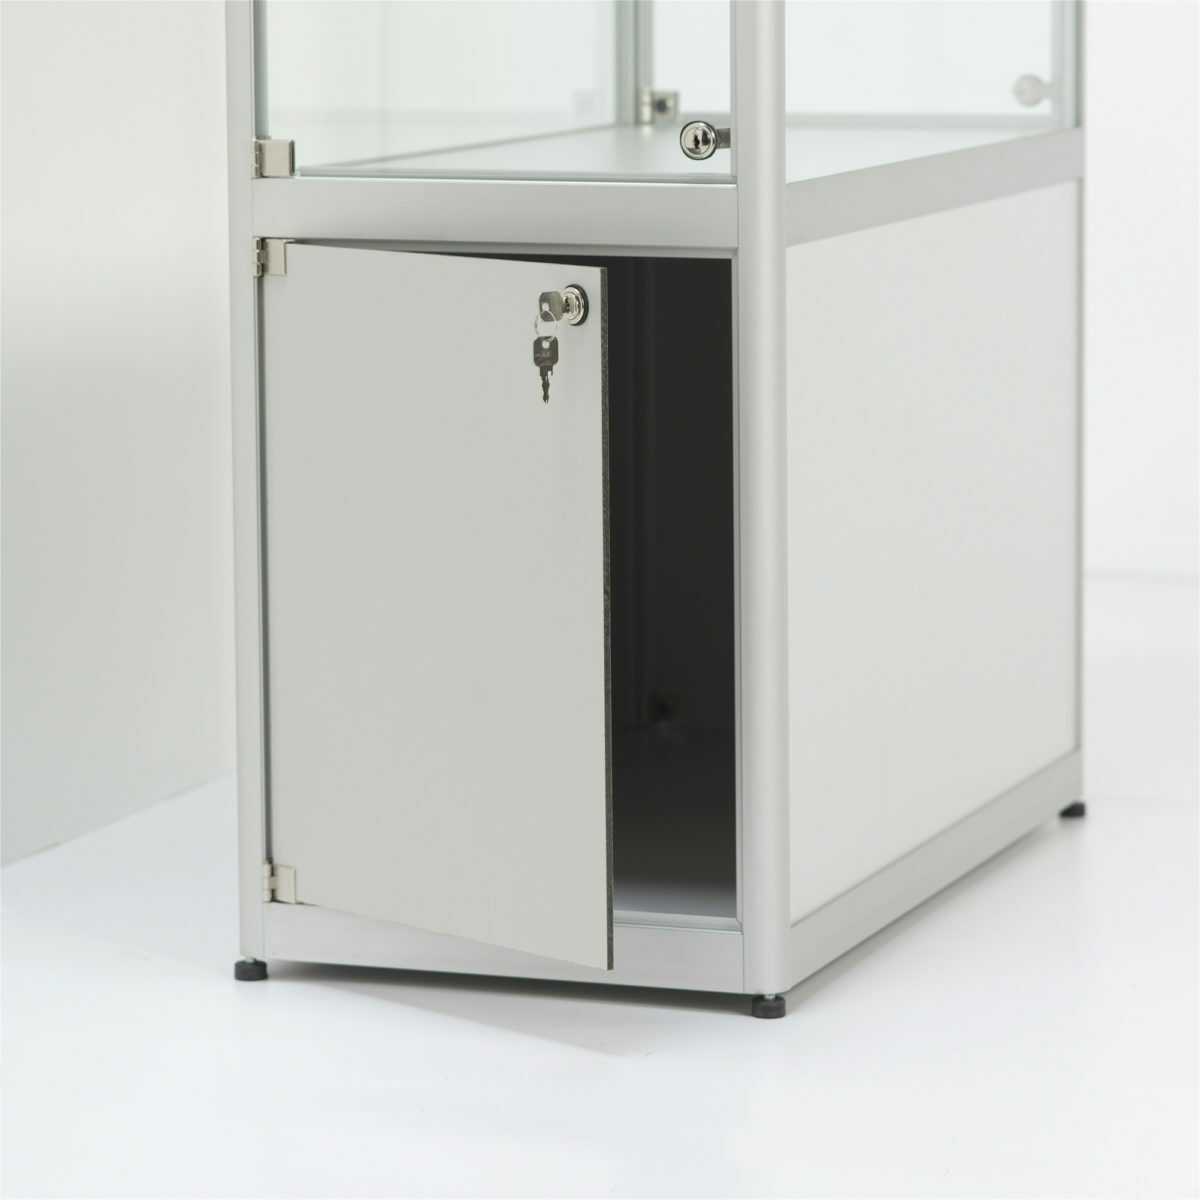 van Esch display cabinet Pictor